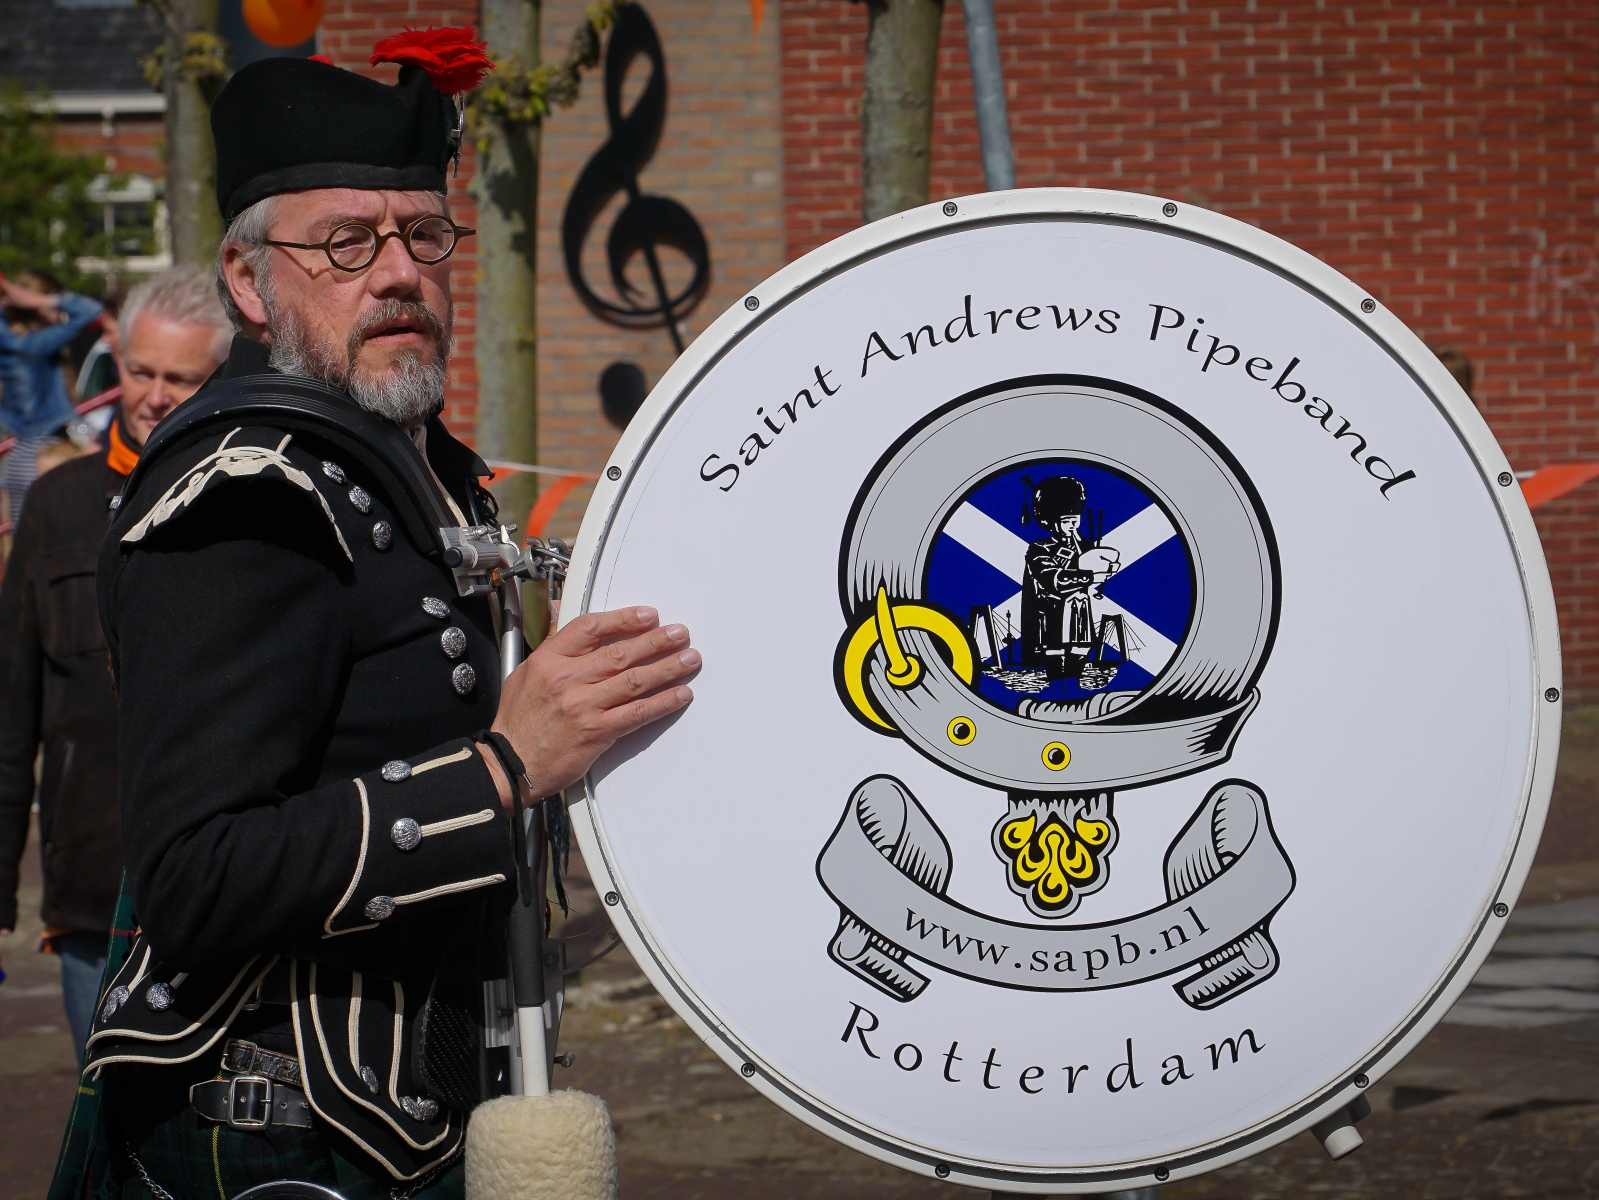 Saint Andrews pipe band